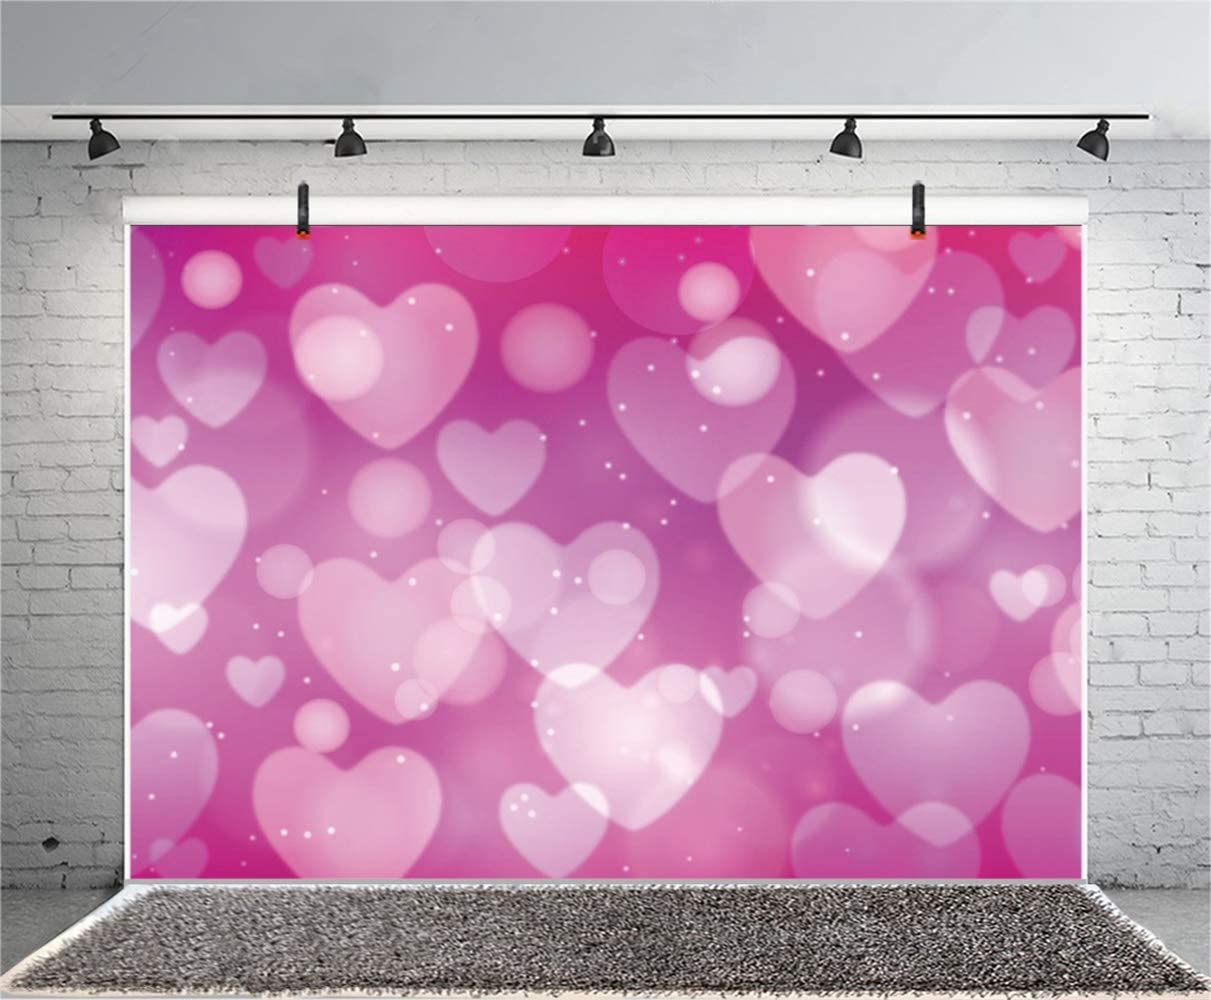 Dreamlike Sweet Rosered Heart Haloes Backdrop Polyester 10x6.5ft Wedding Valentines Day Photography Background Child Newborn Girl Adult Bride Portrait Shoot Wedding Anniversary Photo Props